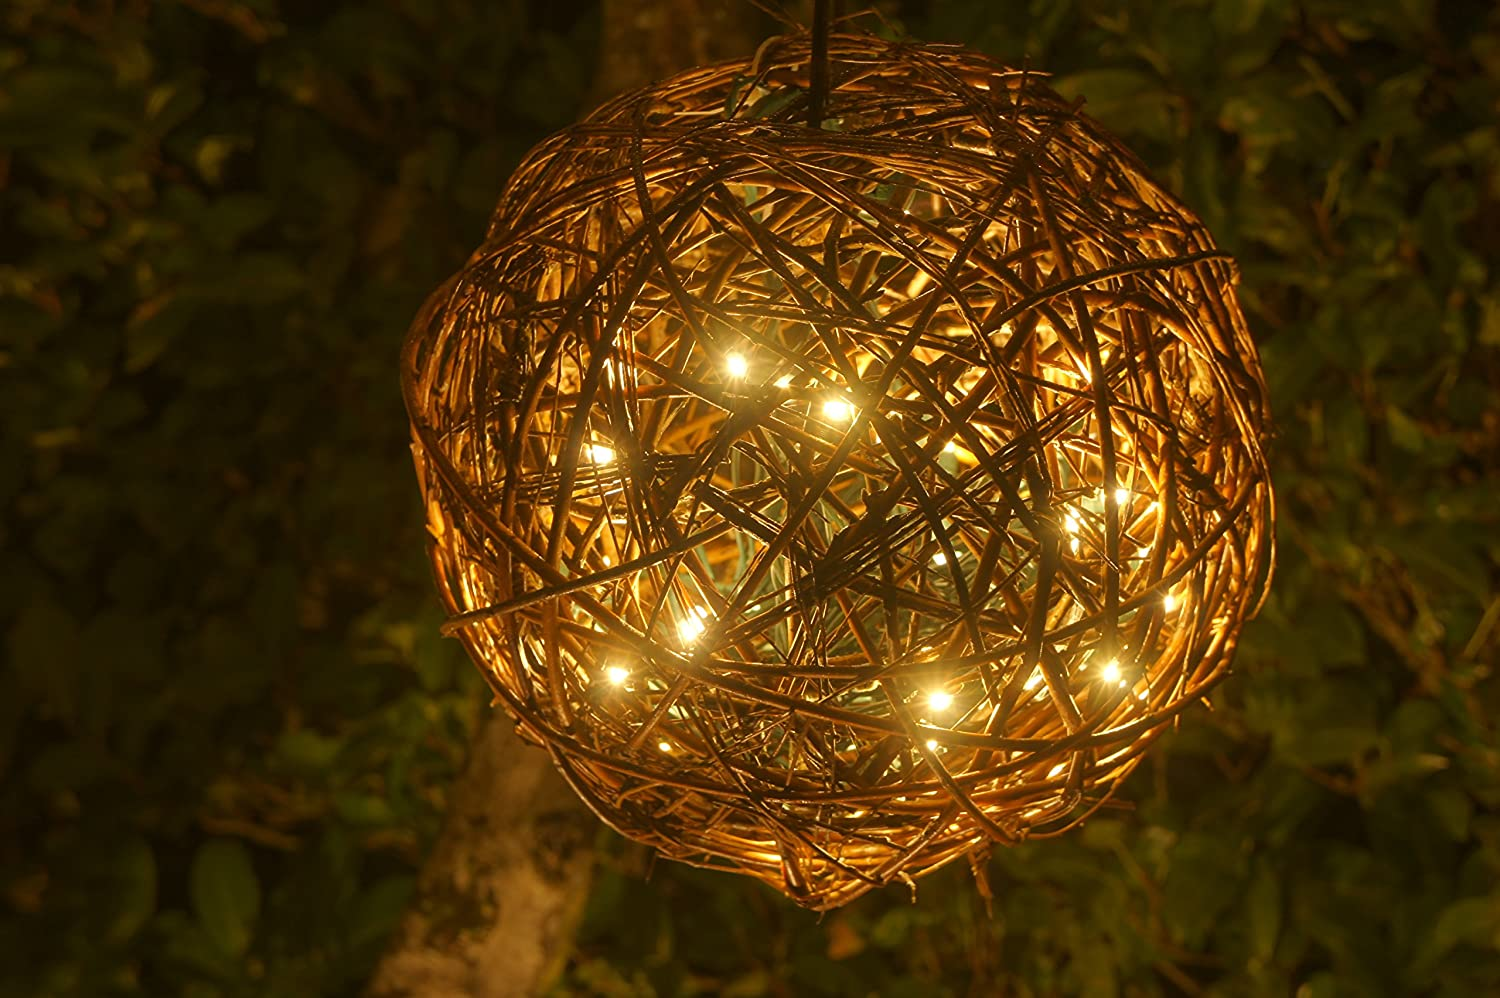 amazoncom willowbrite globe 12 globe filled with 100 warm white leds natural willow branch pendant lamp christmas decor night globe tree light ball - Christmas Sphere Lights